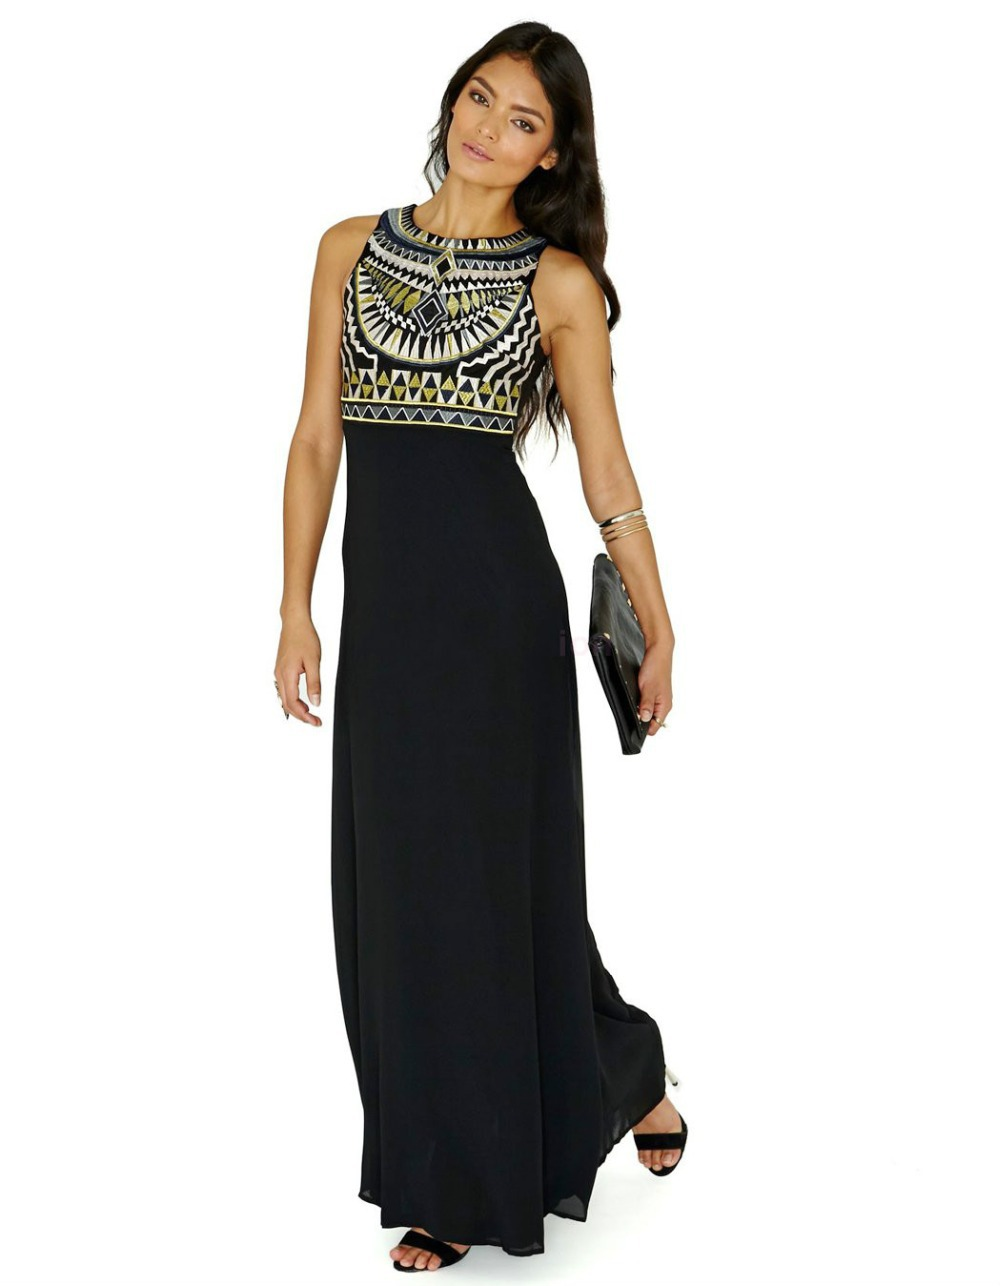 Maxi Dresses Choose a maxi dress for a maxed-out style! Floor-sweeping and figure-skimming, the long dress is entrance-making fashion at its best, with hints of prints and embellished detailing ensuring you look flawless in long lengths.